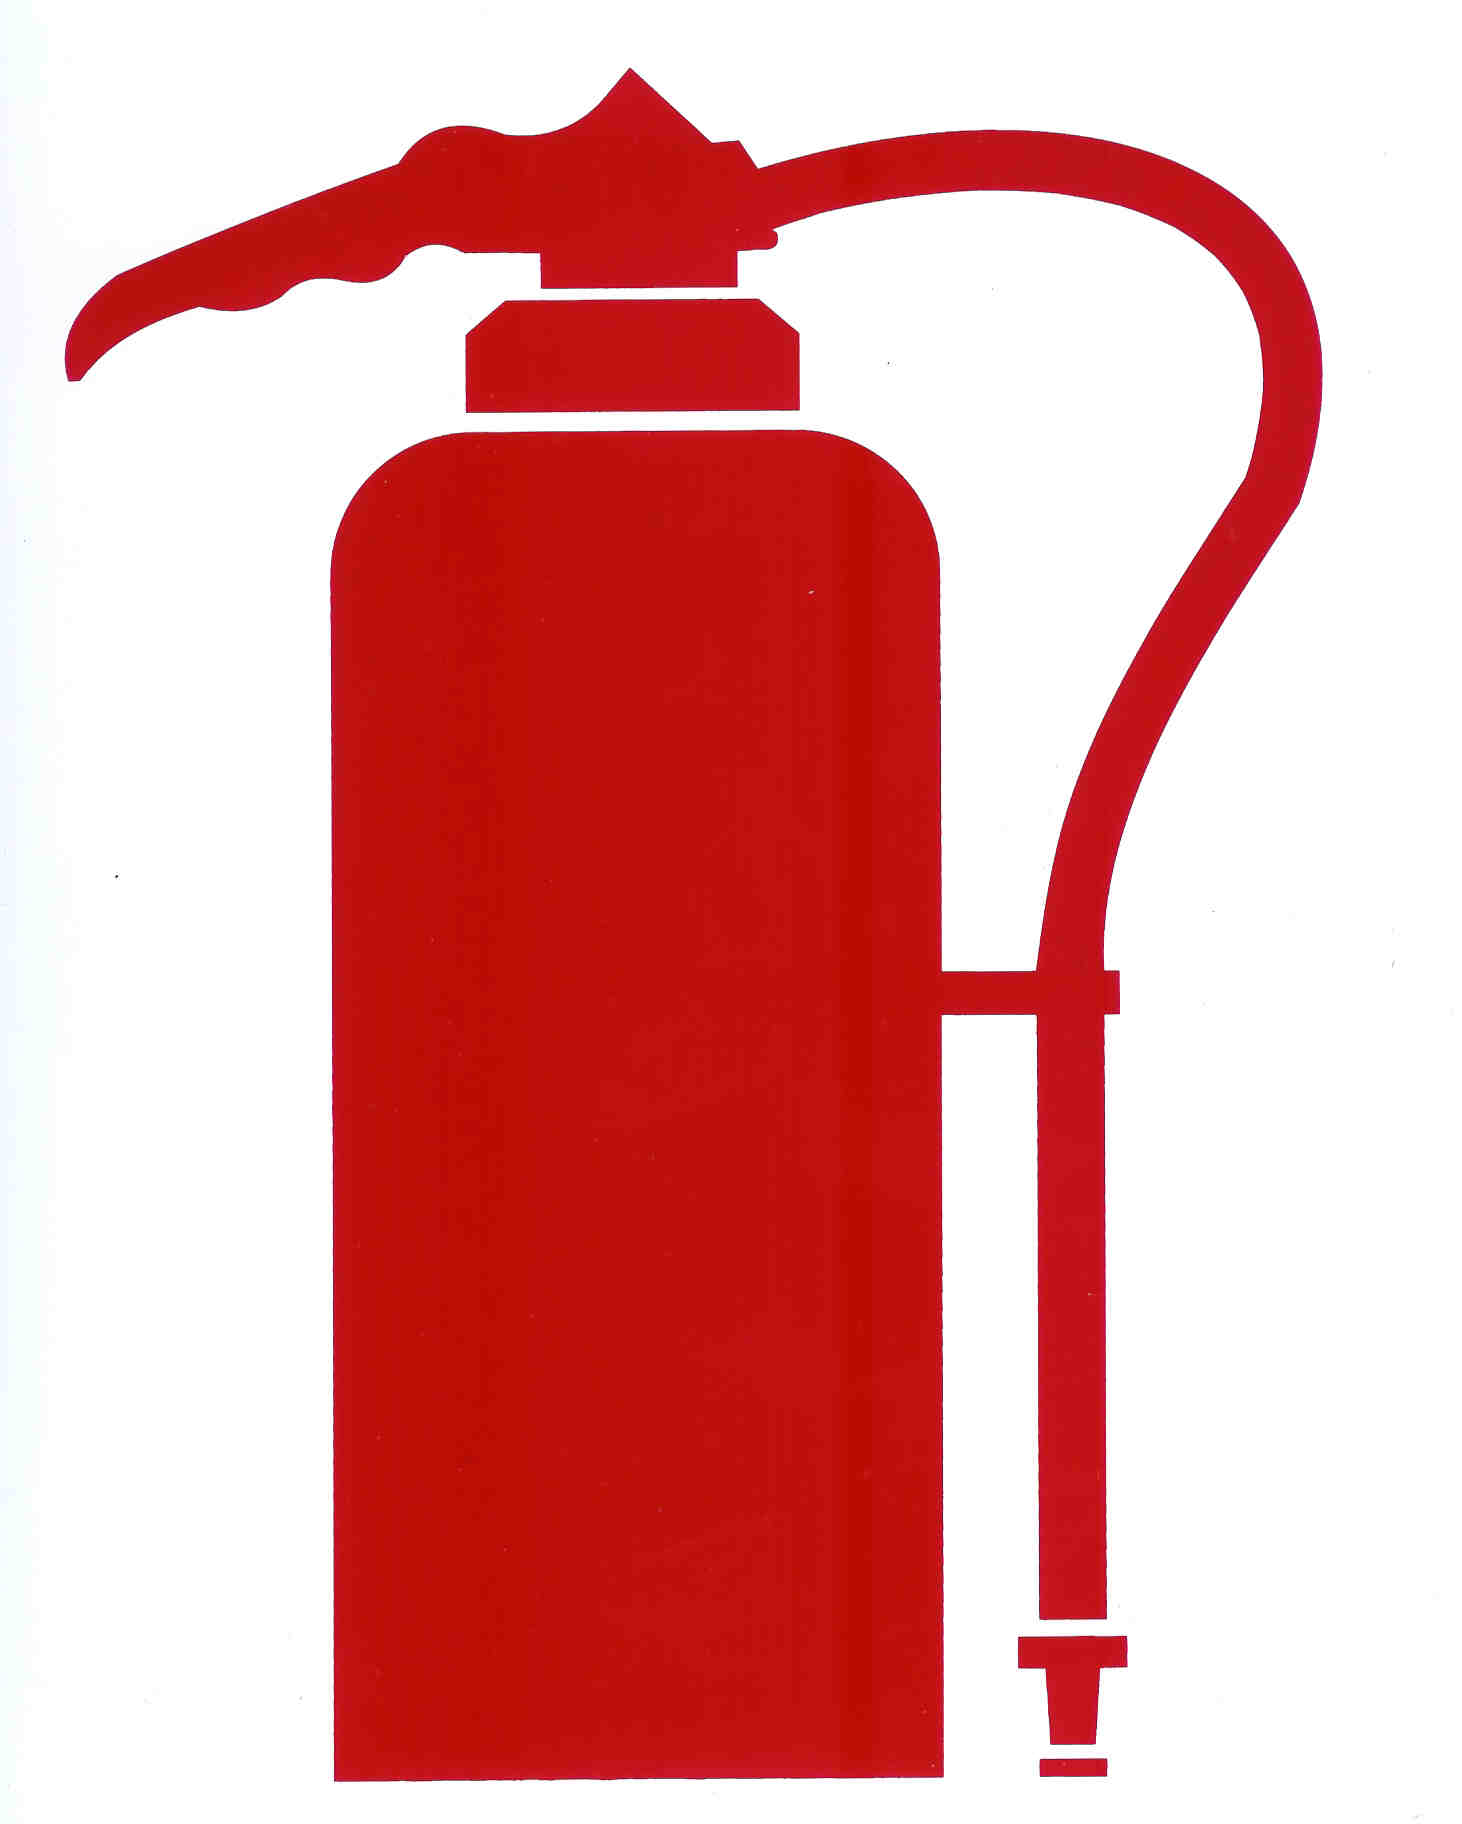 Fire Extinguisher Images - ClipArt Best